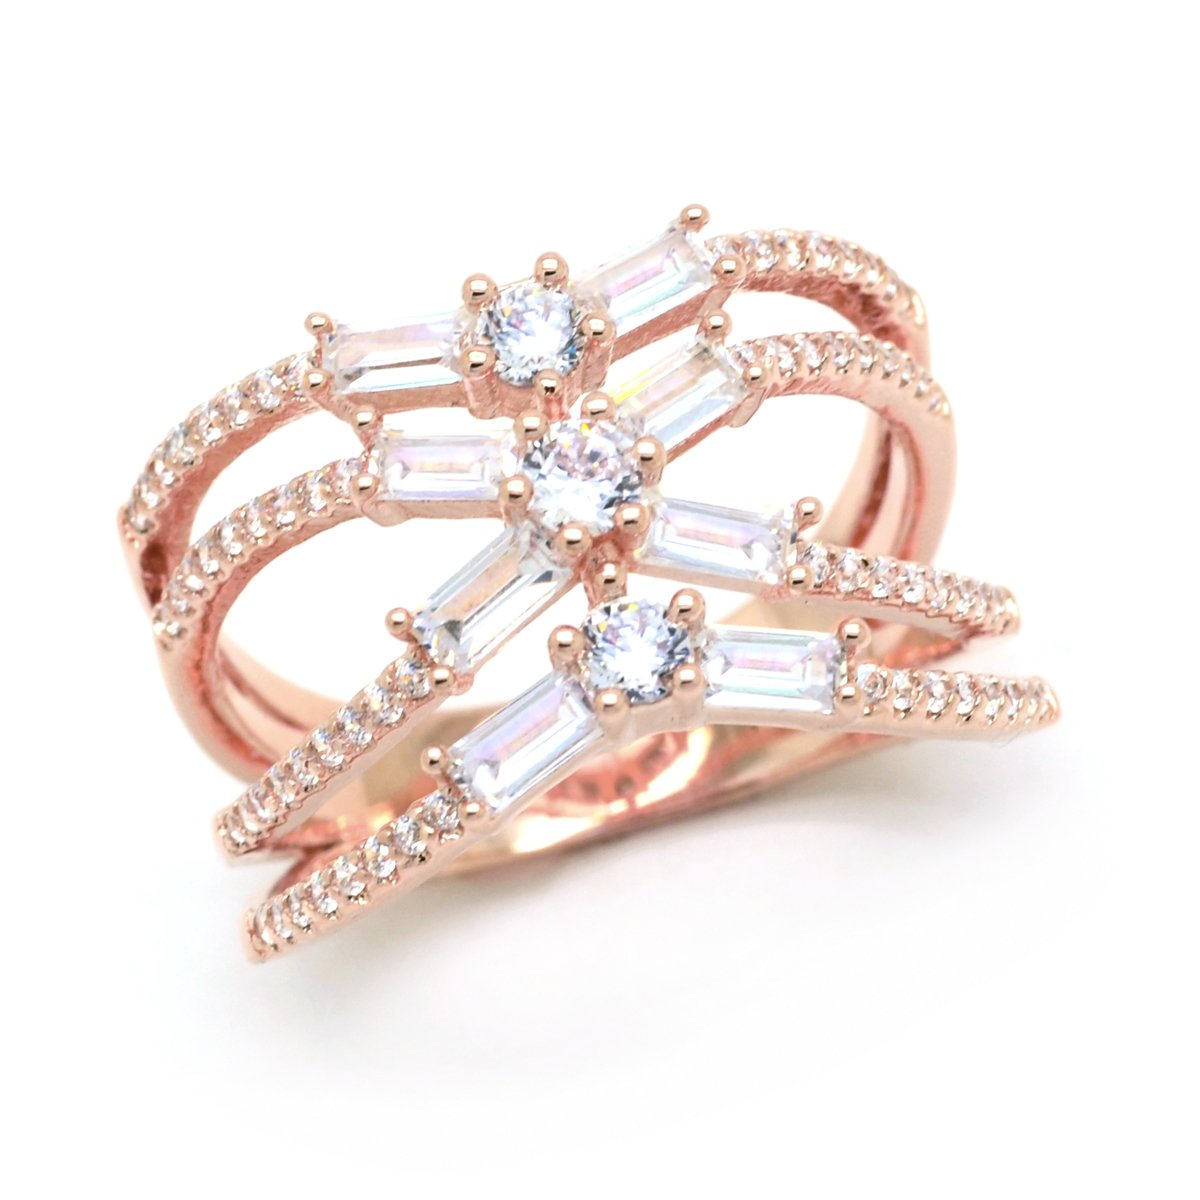 Sparkly Bride CZ Statement Ring Criss Cross Rose Gold-Flashed Baguette Women Fashion